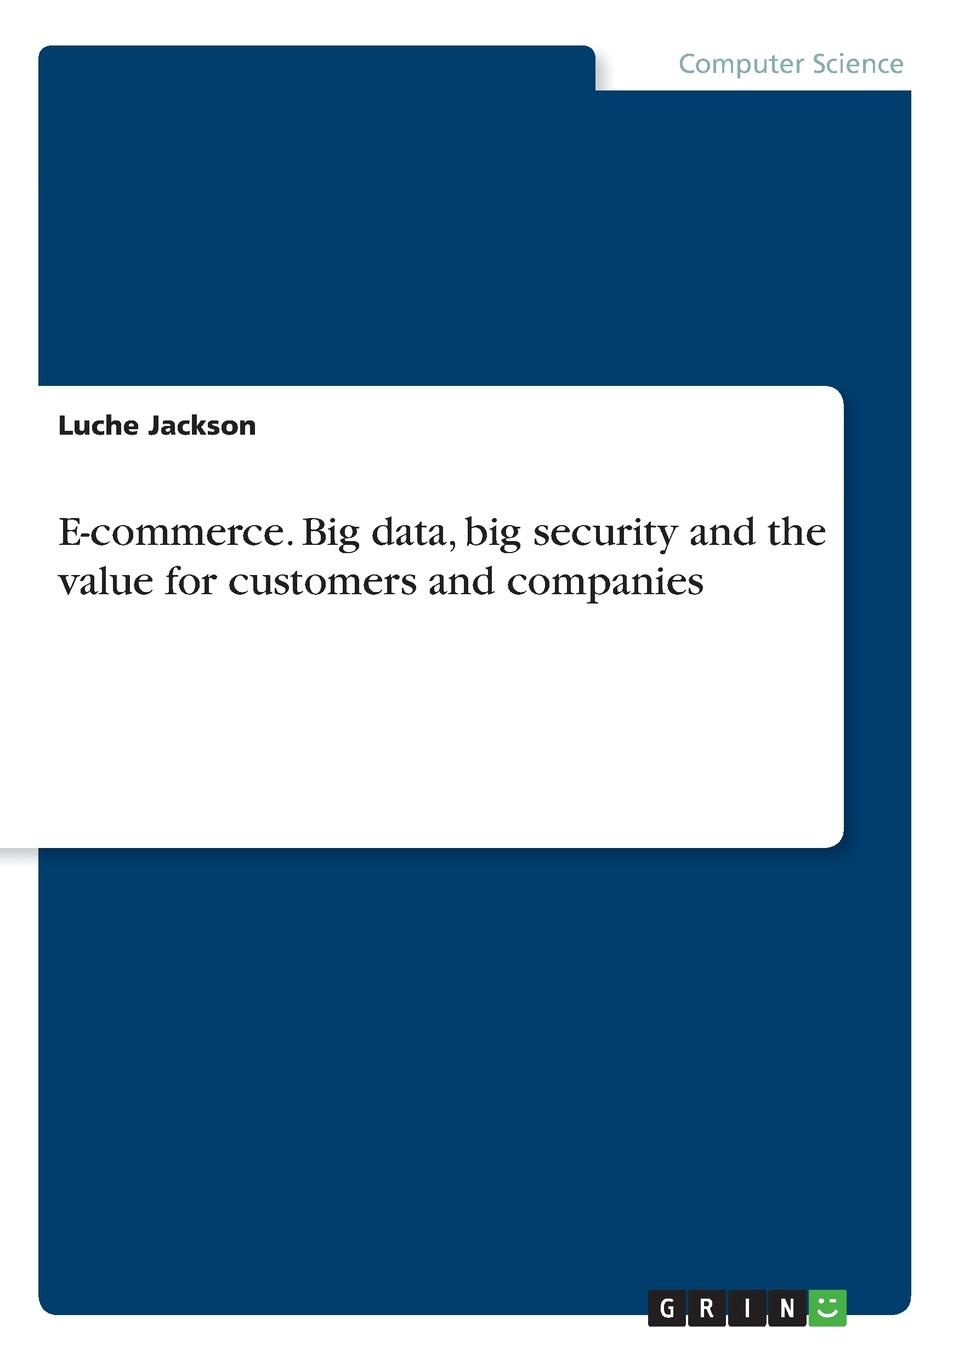 Luche Jackson E-commerce. Big data, big security and the value for customers and companies michael minelli big data big analytics emerging business intelligence and analytic trends for today s businesses